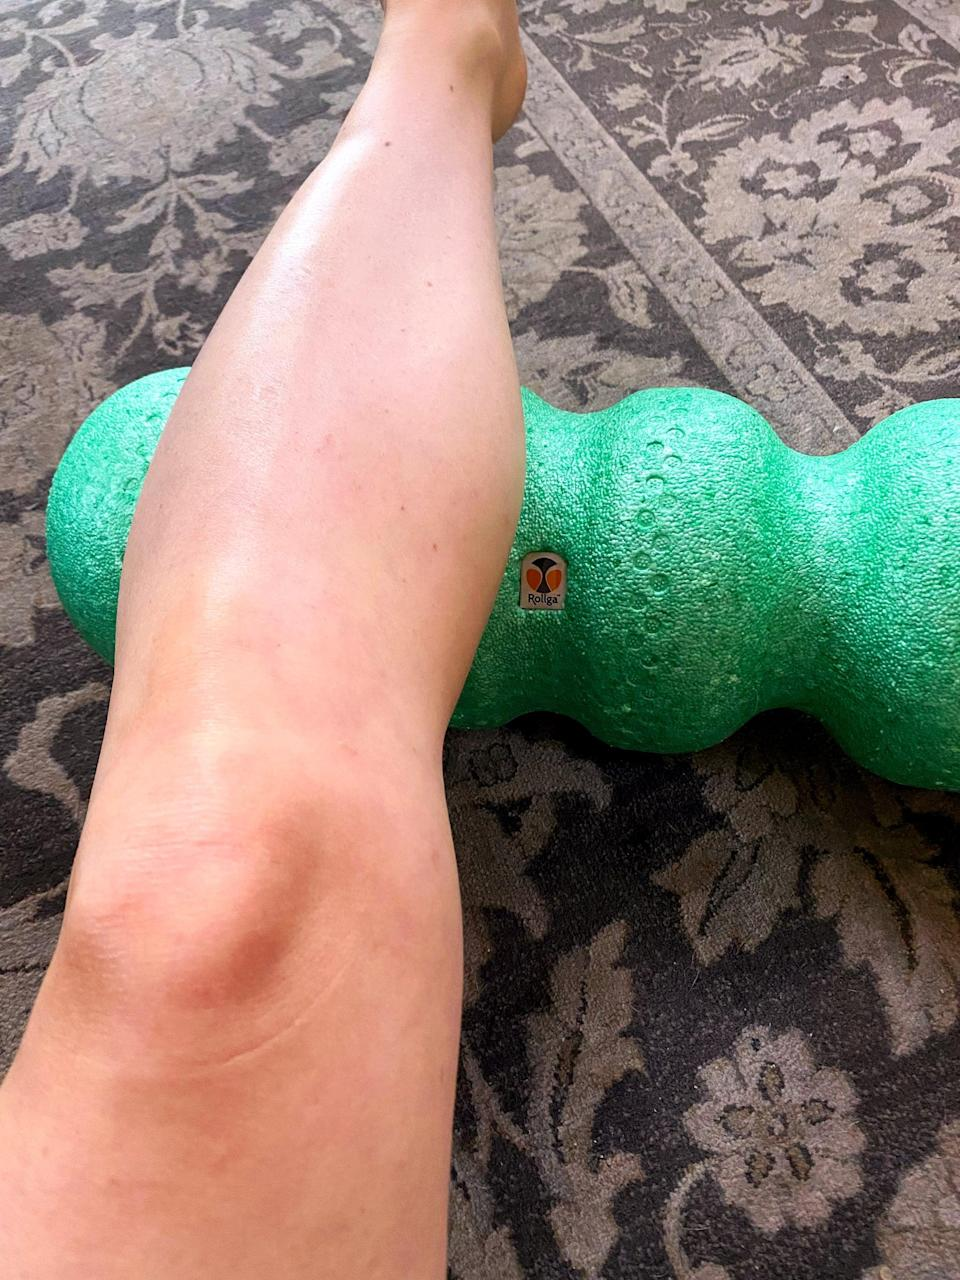 <p>Since this foam roller has two narrow areas in the middle, you can really dig into tight muscle knots and get an intense deep tissue massage. I love it for my calves, hamstrings, quads, triceps, and forearms - really, there's no place on my body this roller hasn't made feel better!</p>